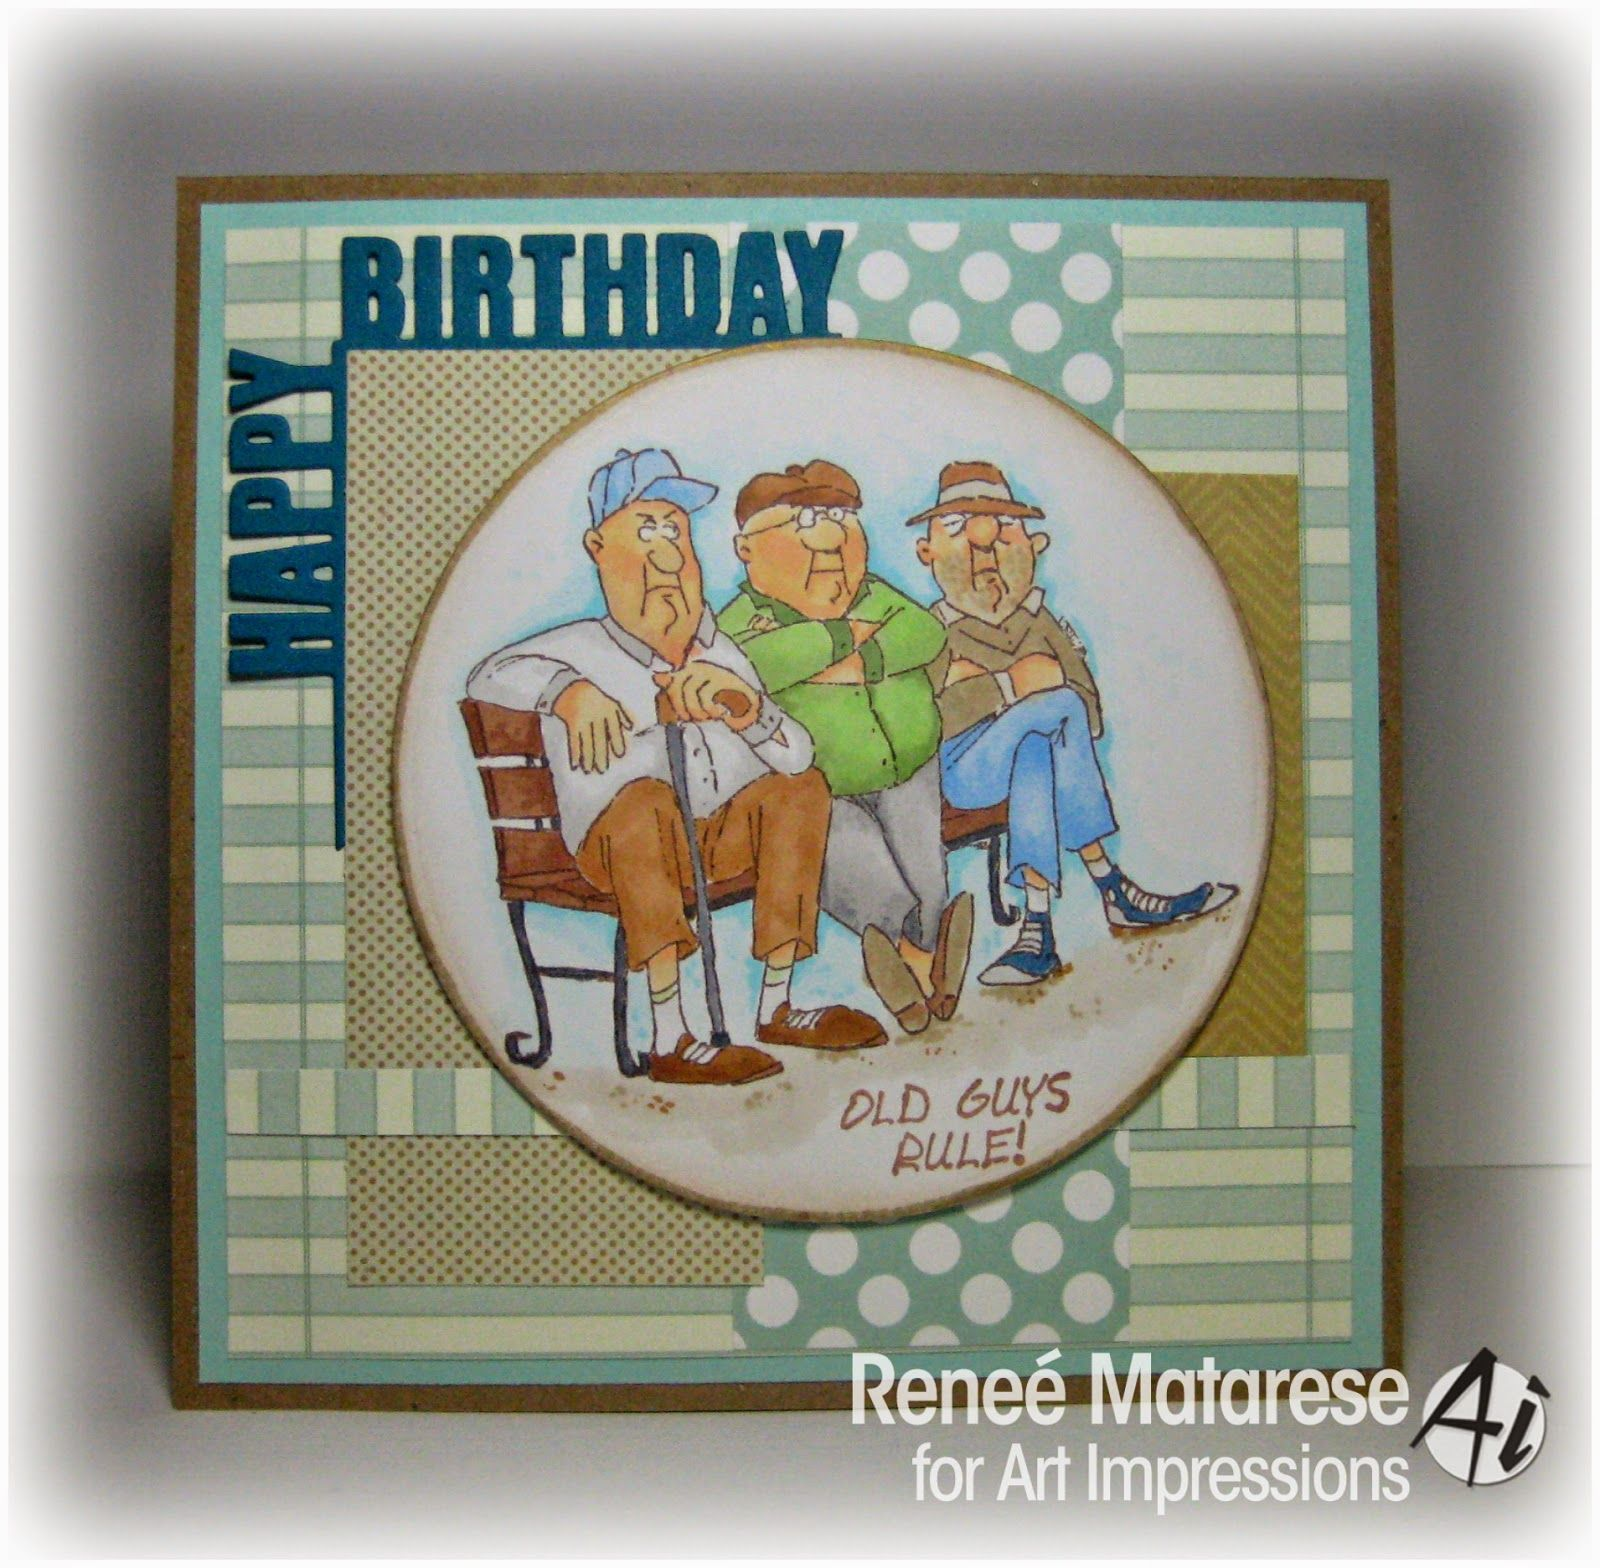 Art Impressions Ai People Old Guys Handmade Masculine Birthday Card